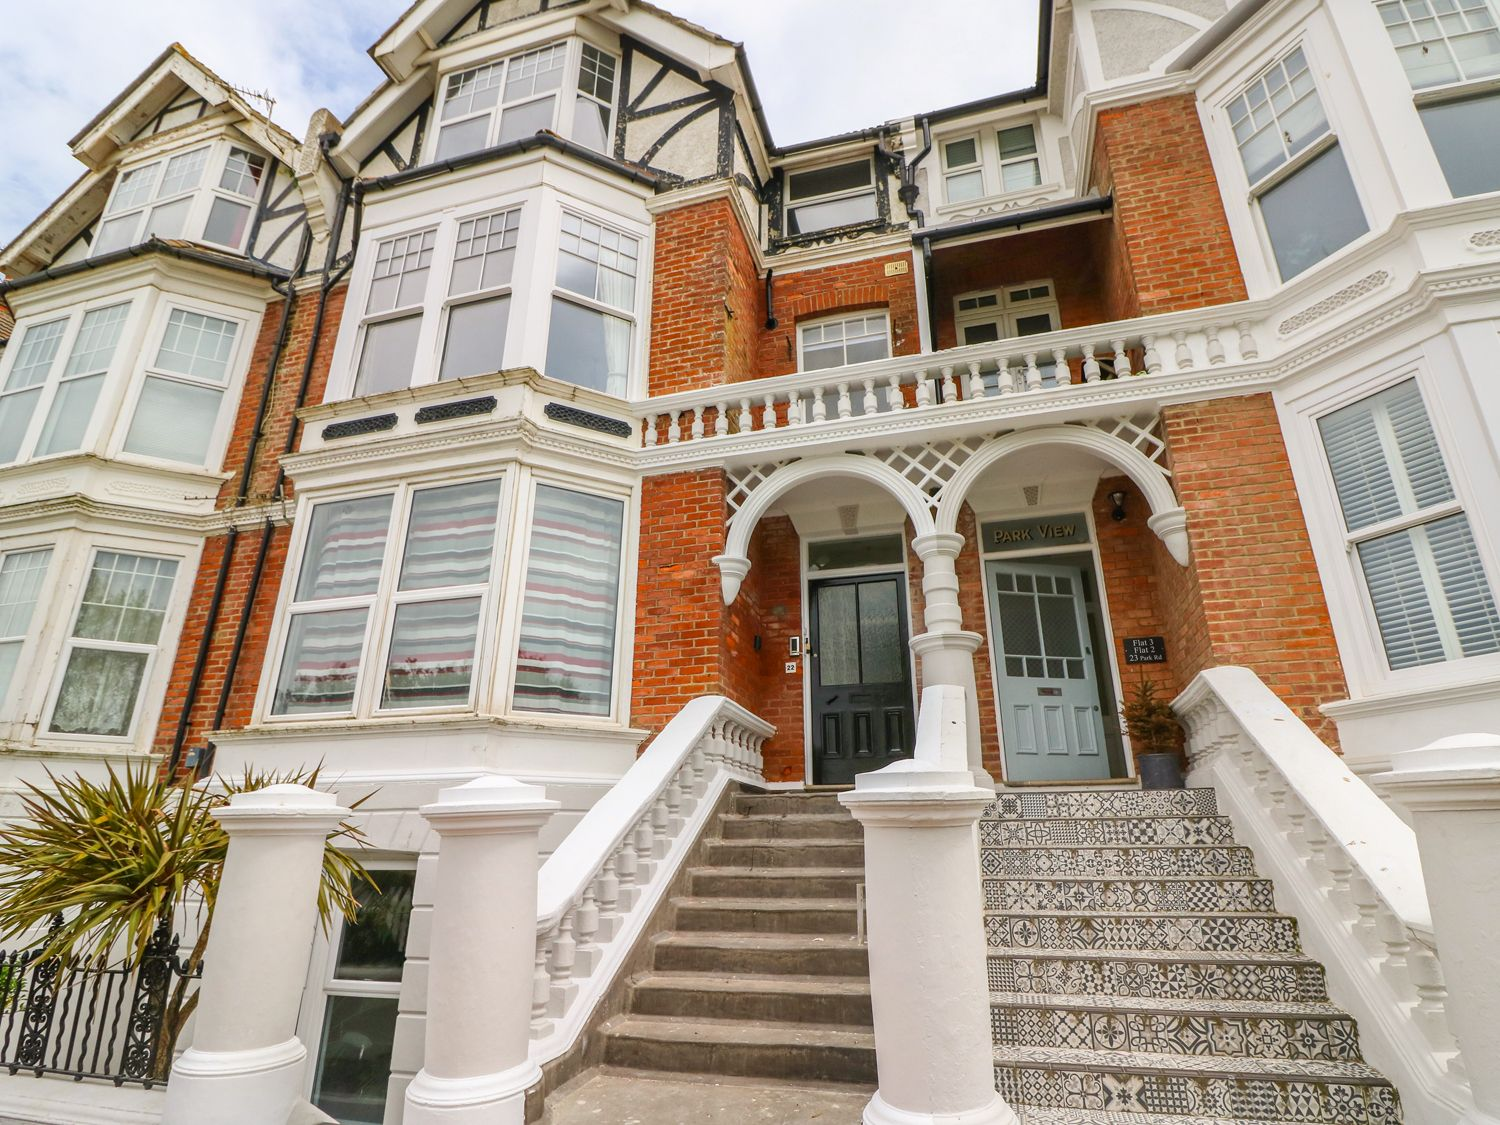 Flat 3, Bexhill-on-sea